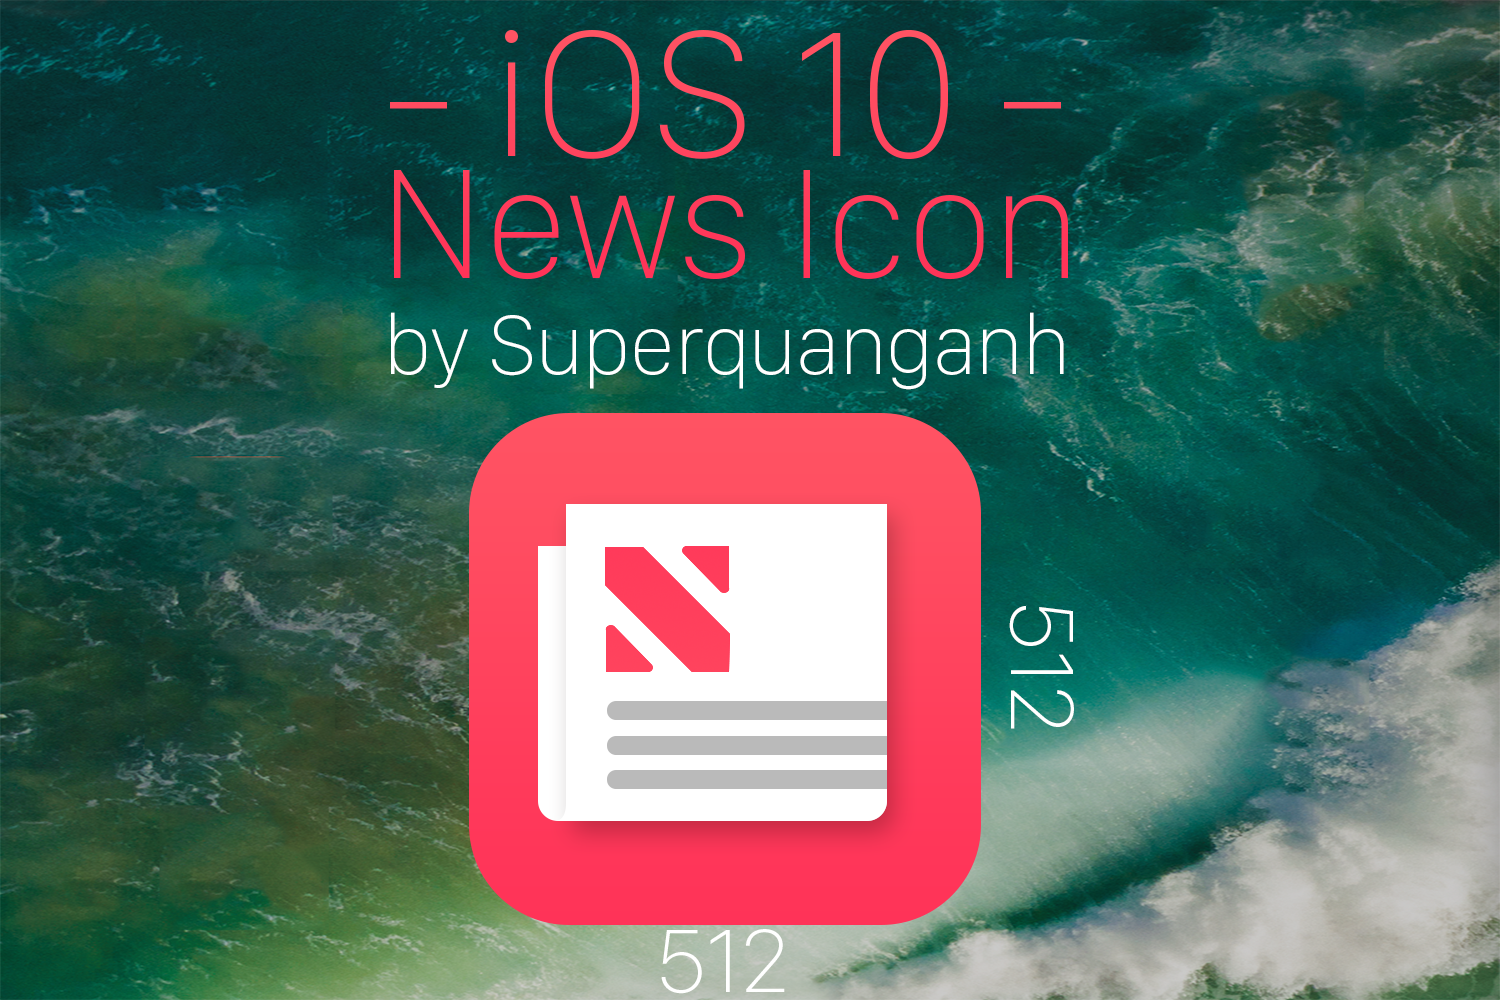 iOS 10 News Icon by Superquanganh